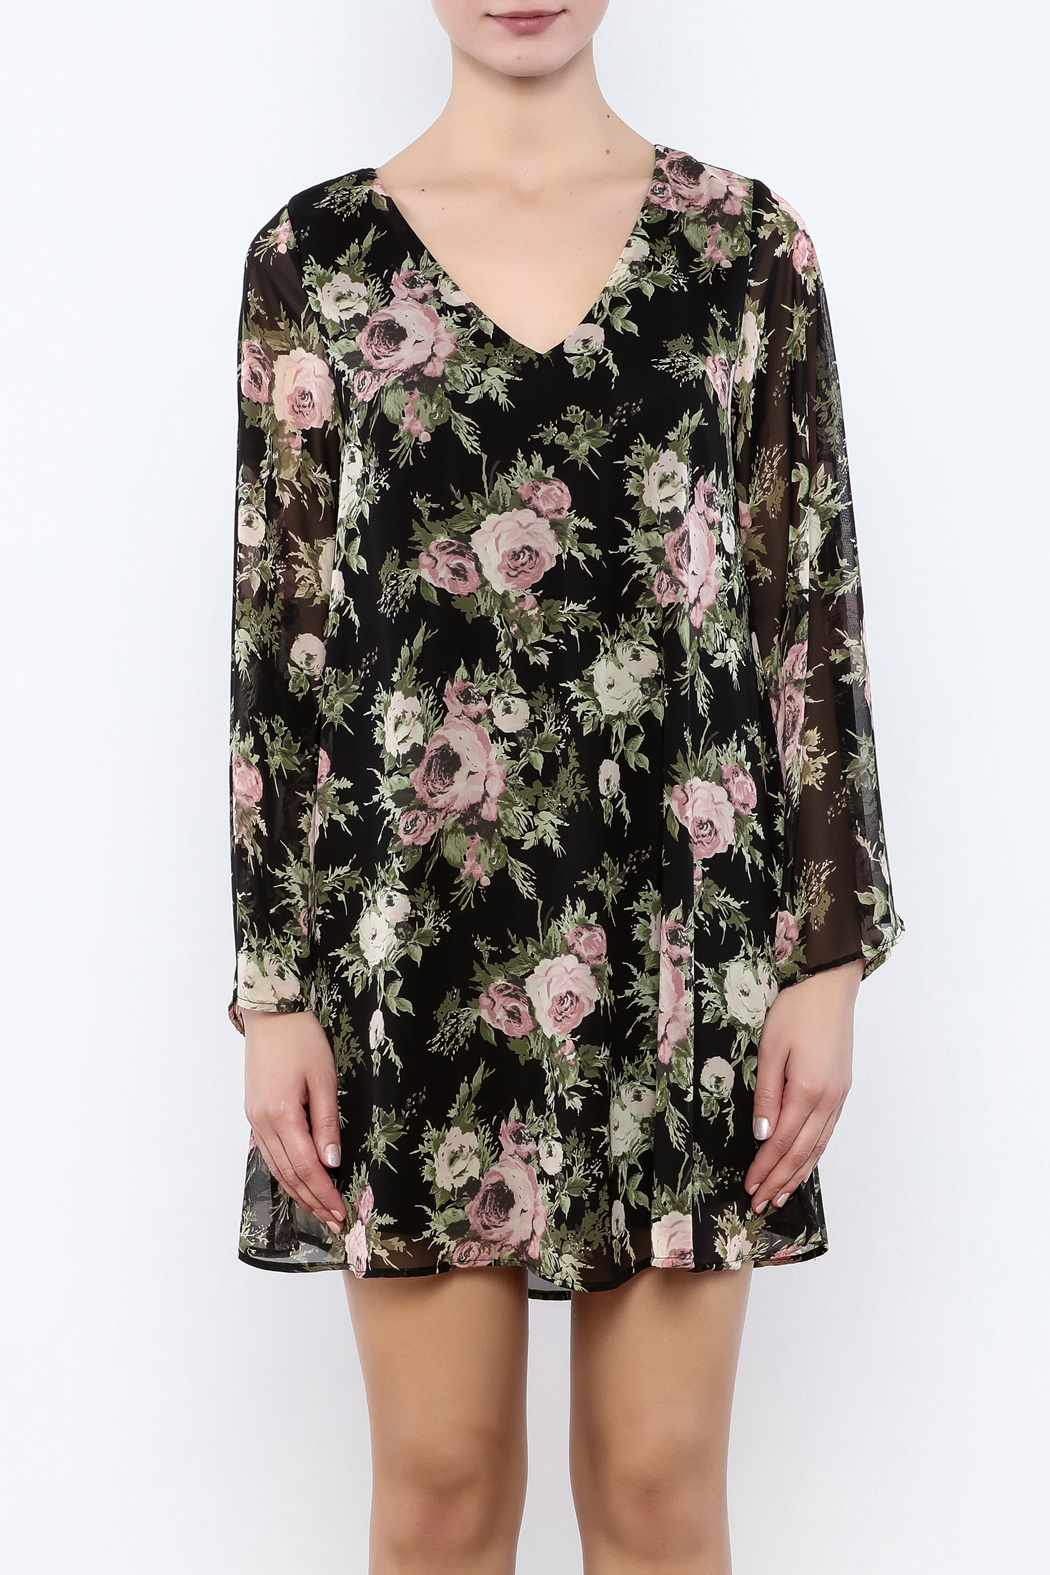 Coveted Clothing Black Floral Dress - Side Cropped Image